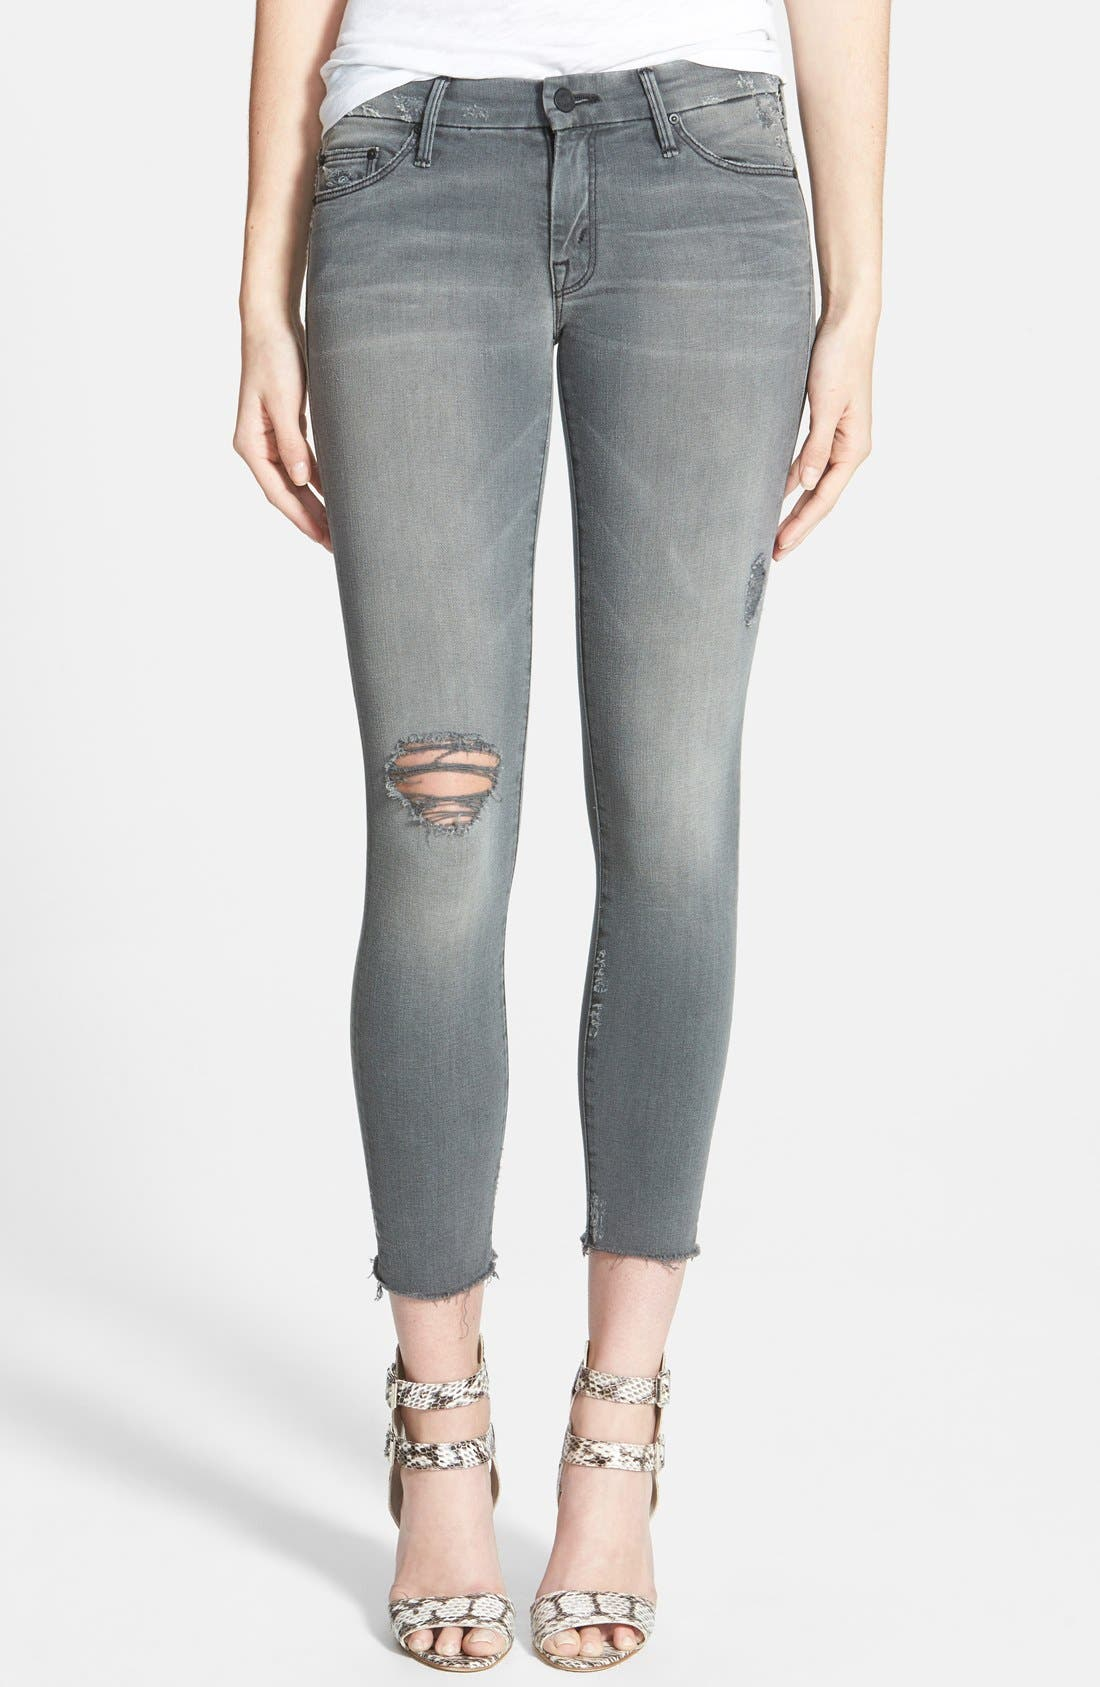 Alternate Image 1 Selected - MOTHER Frayed Ankle Jeans (Last Chance Saloon)